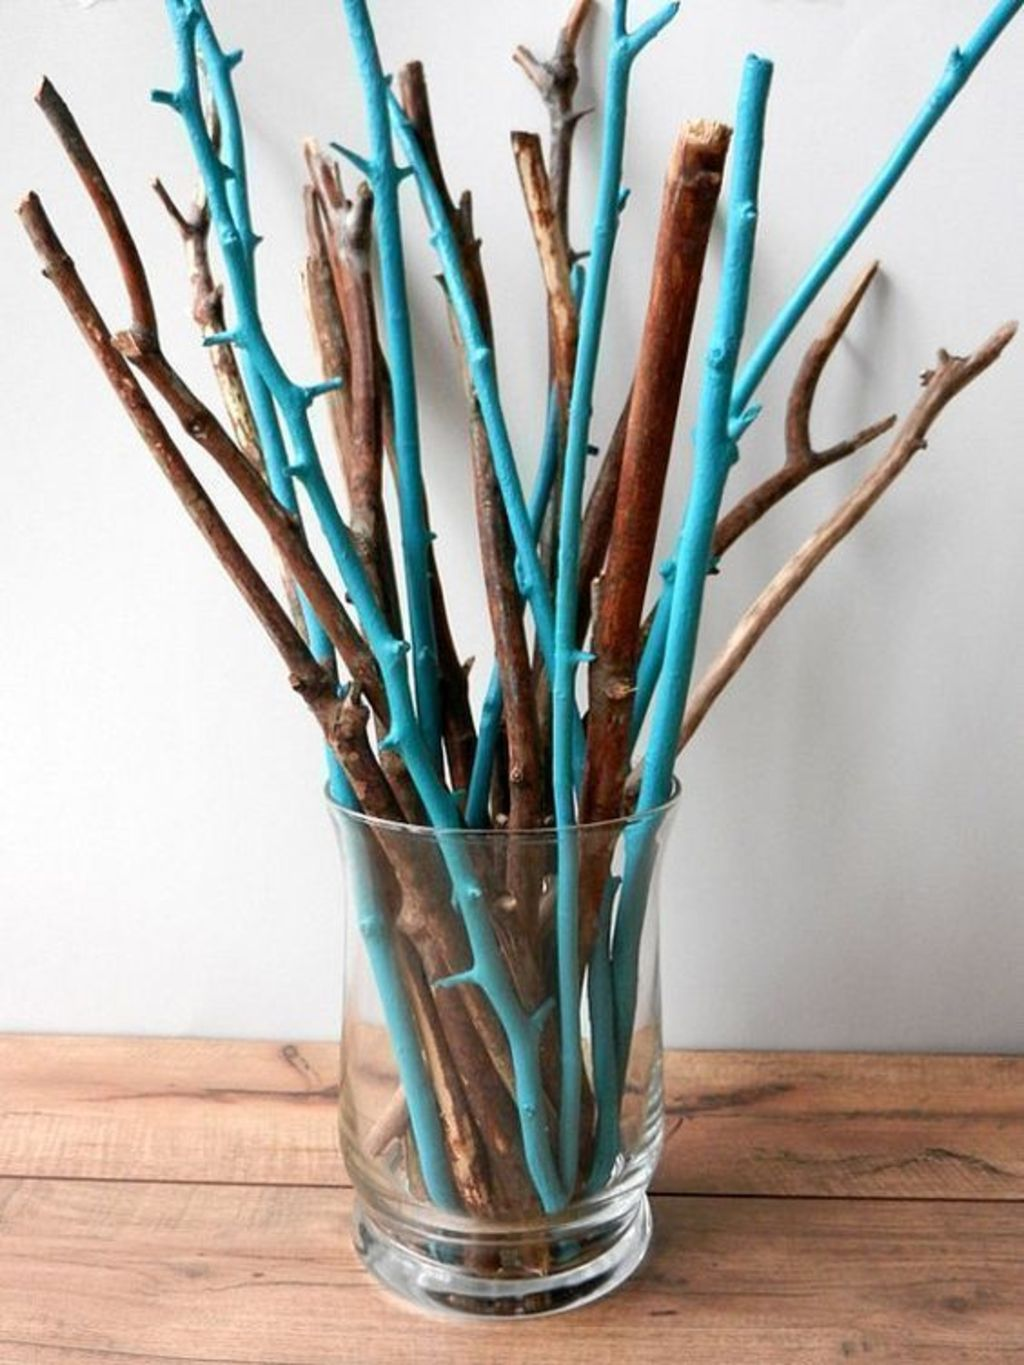 https://elonahome.com/wp-content/uploads/2019/01/Simple-Beautiful-DIY-Home-Decor-Ideas-Out-Off-Tree-Branches-Part-18.jpg